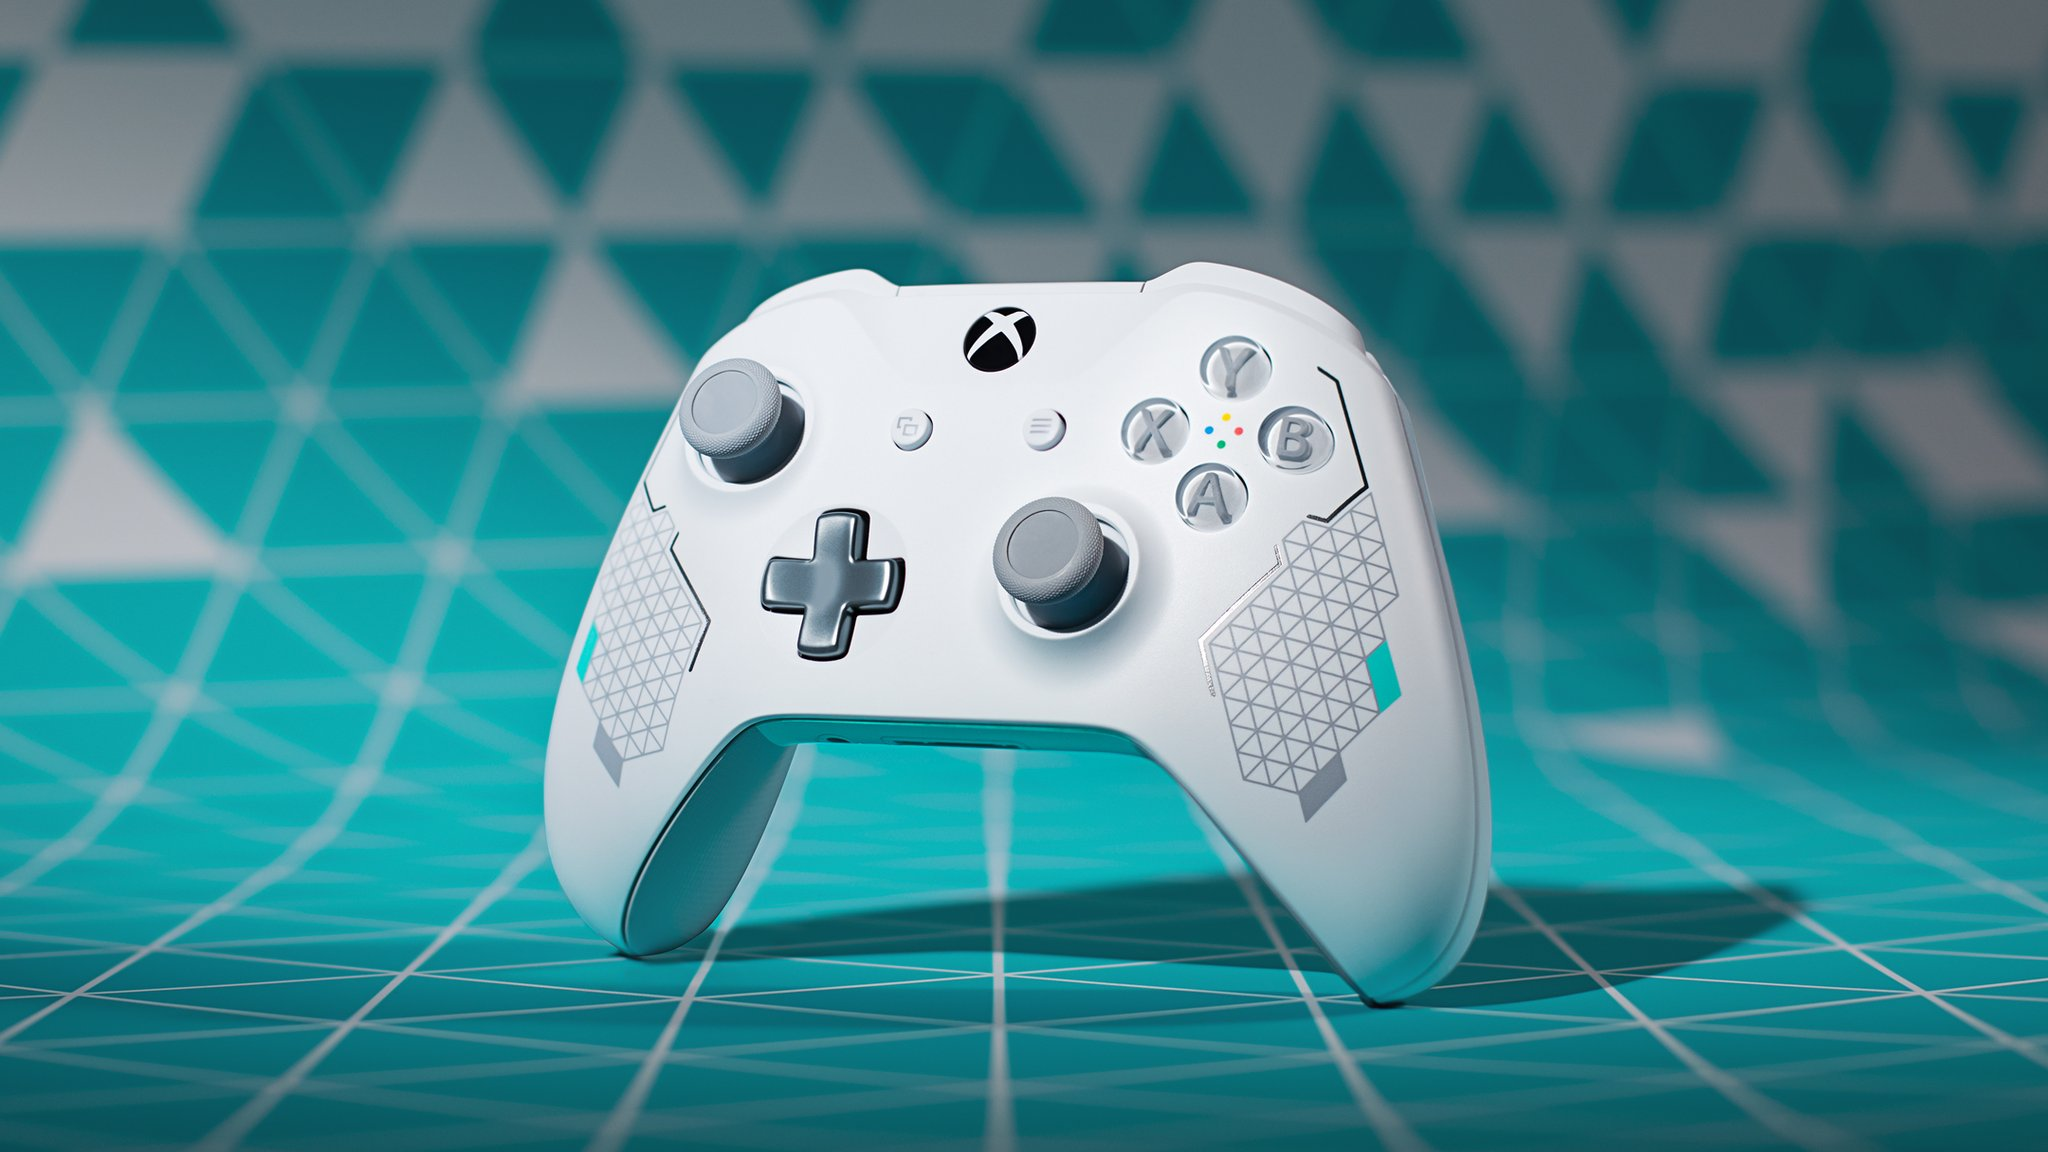 Google's latest Android Pie release supports Xbox One controllers 1